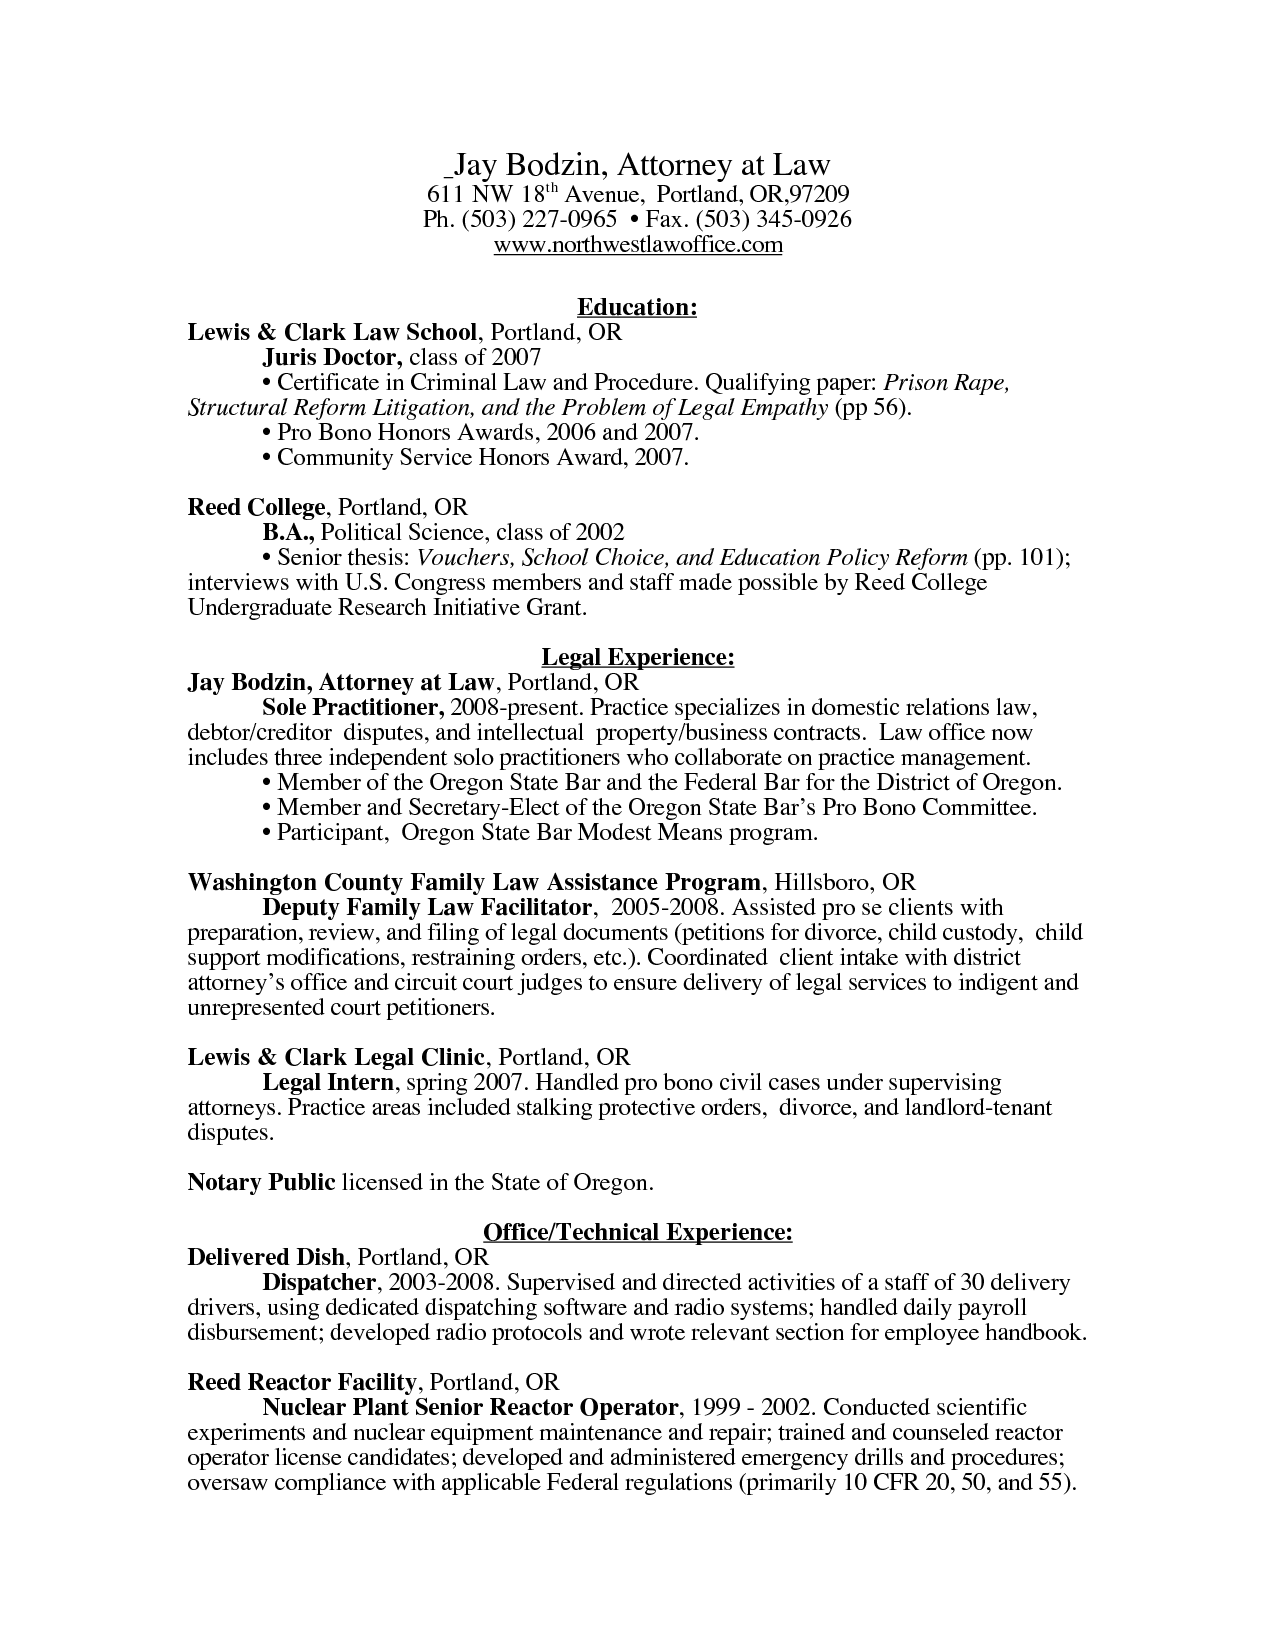 juris doctor resume northwest law office jay bodzin resume